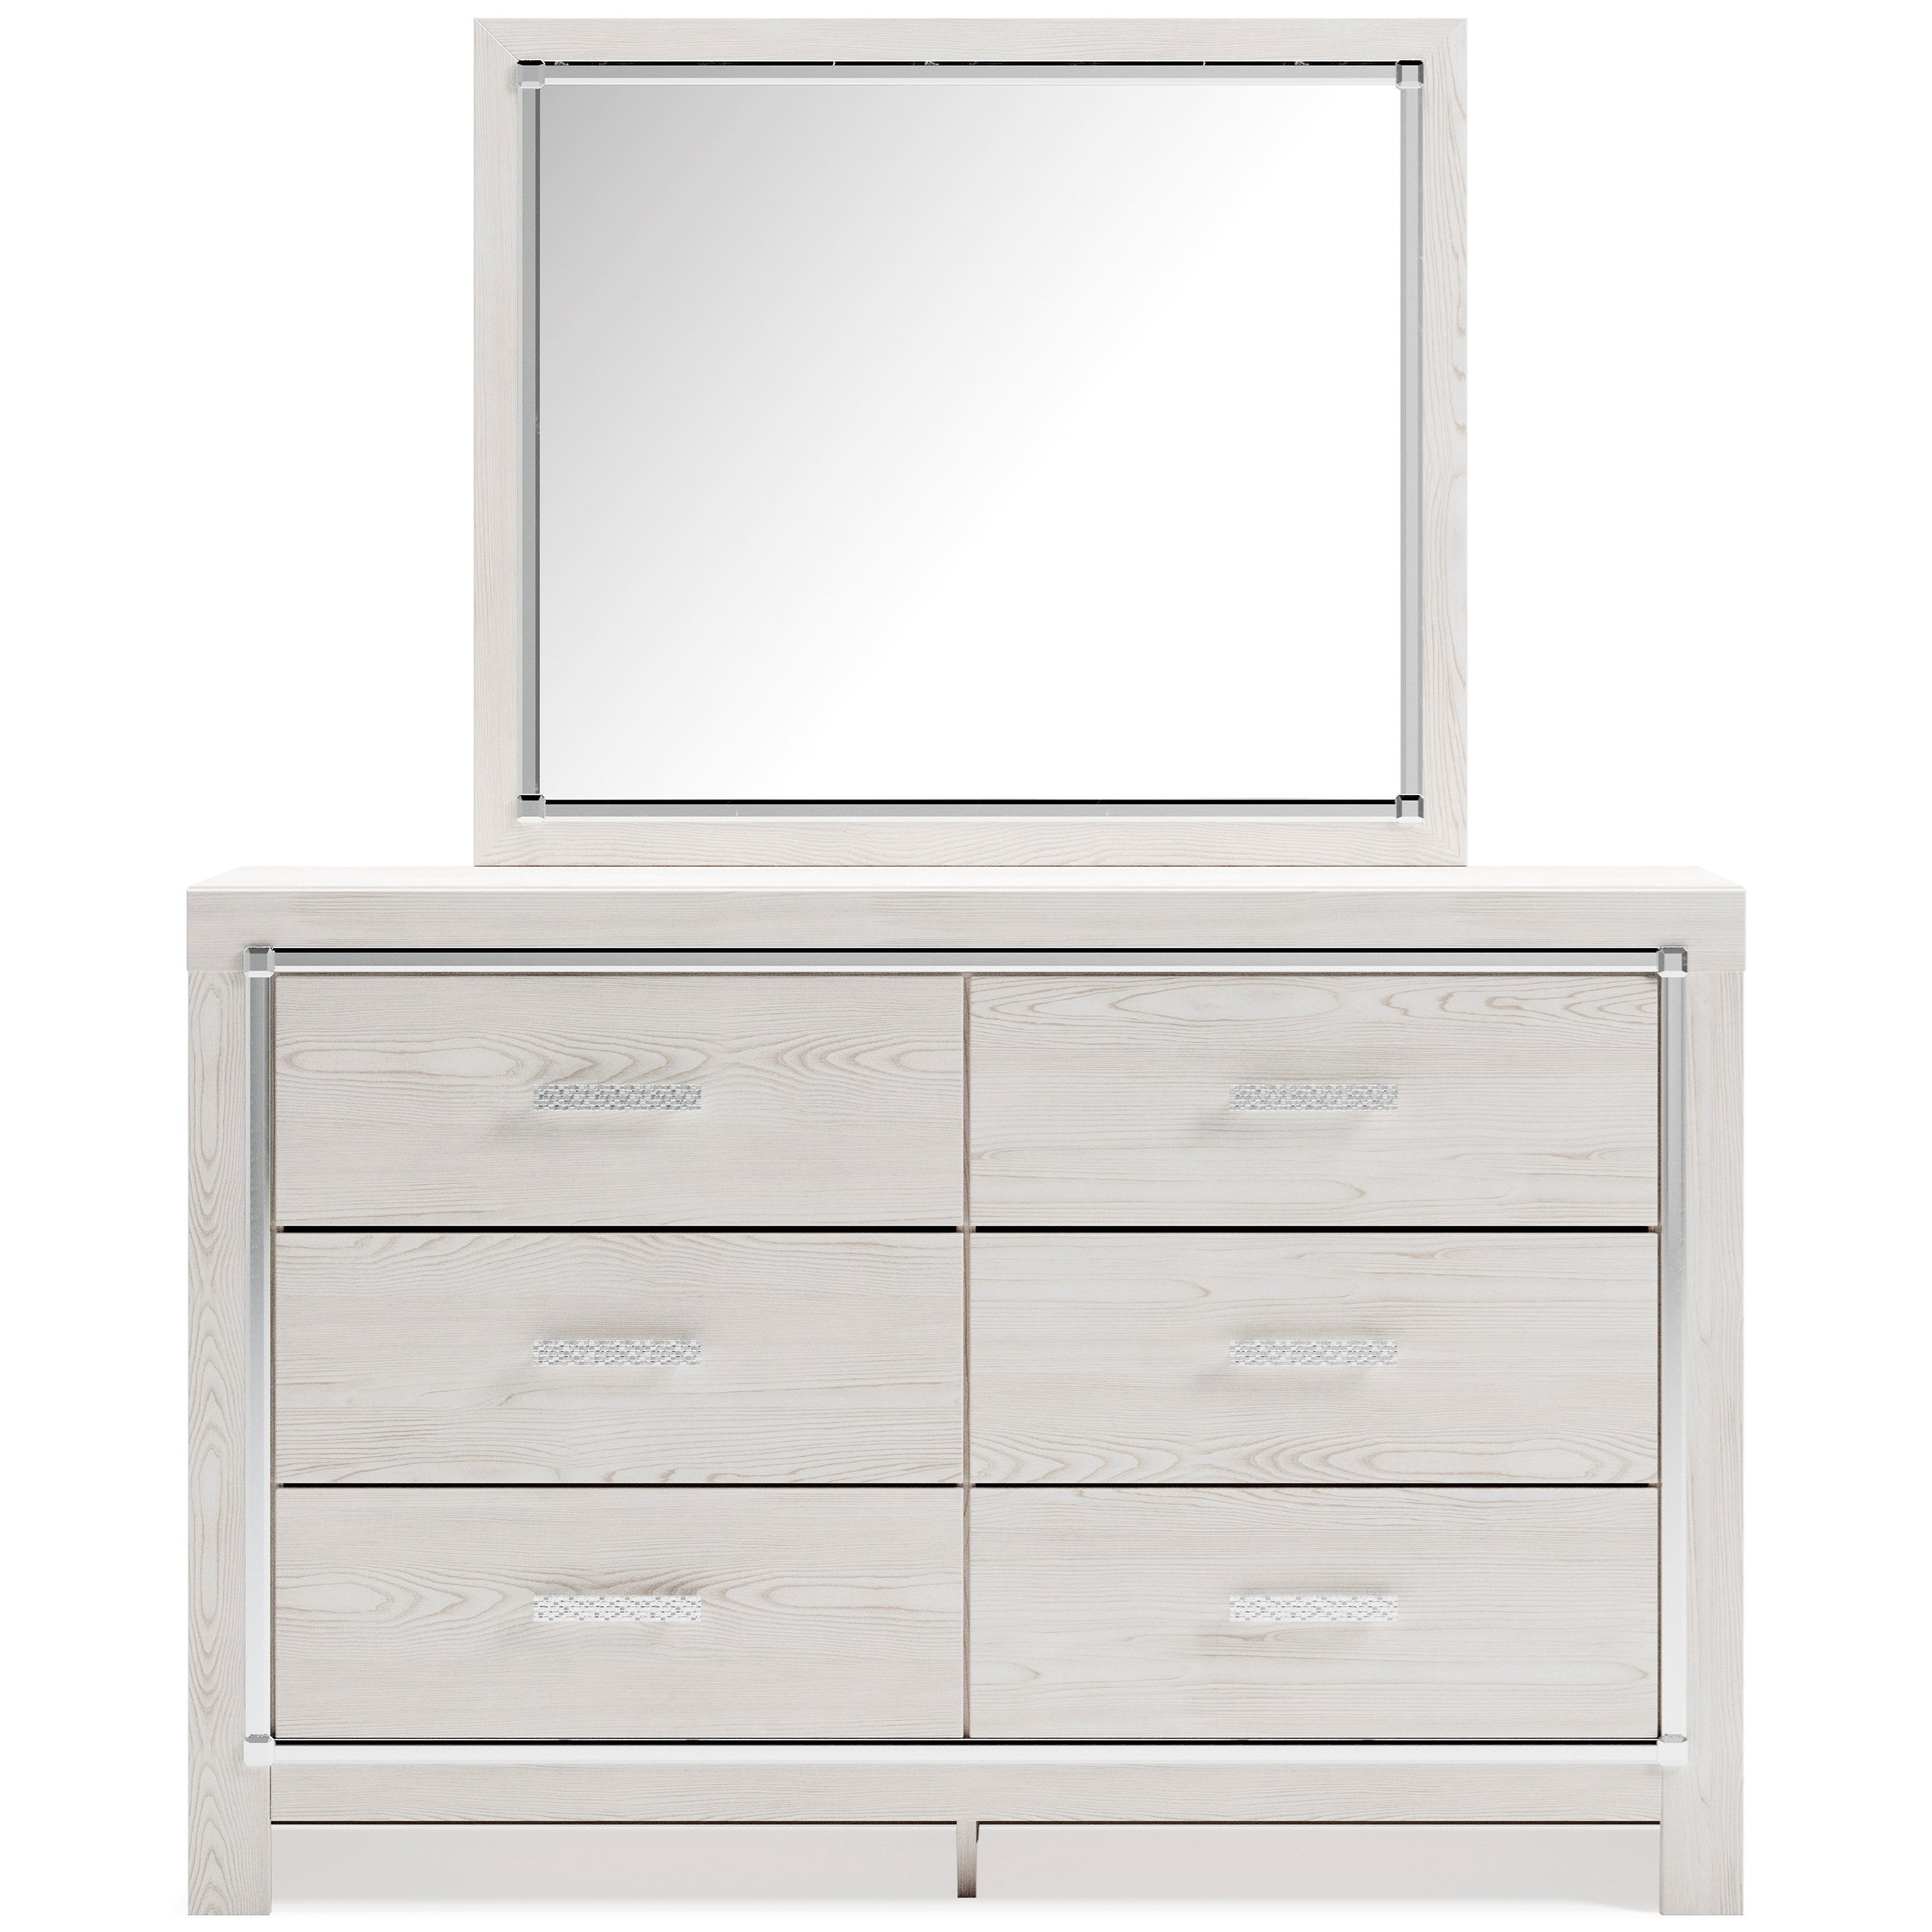 Altyra Dresser & Bedroom Mirror by Signature Design by Ashley at Carolina Direct